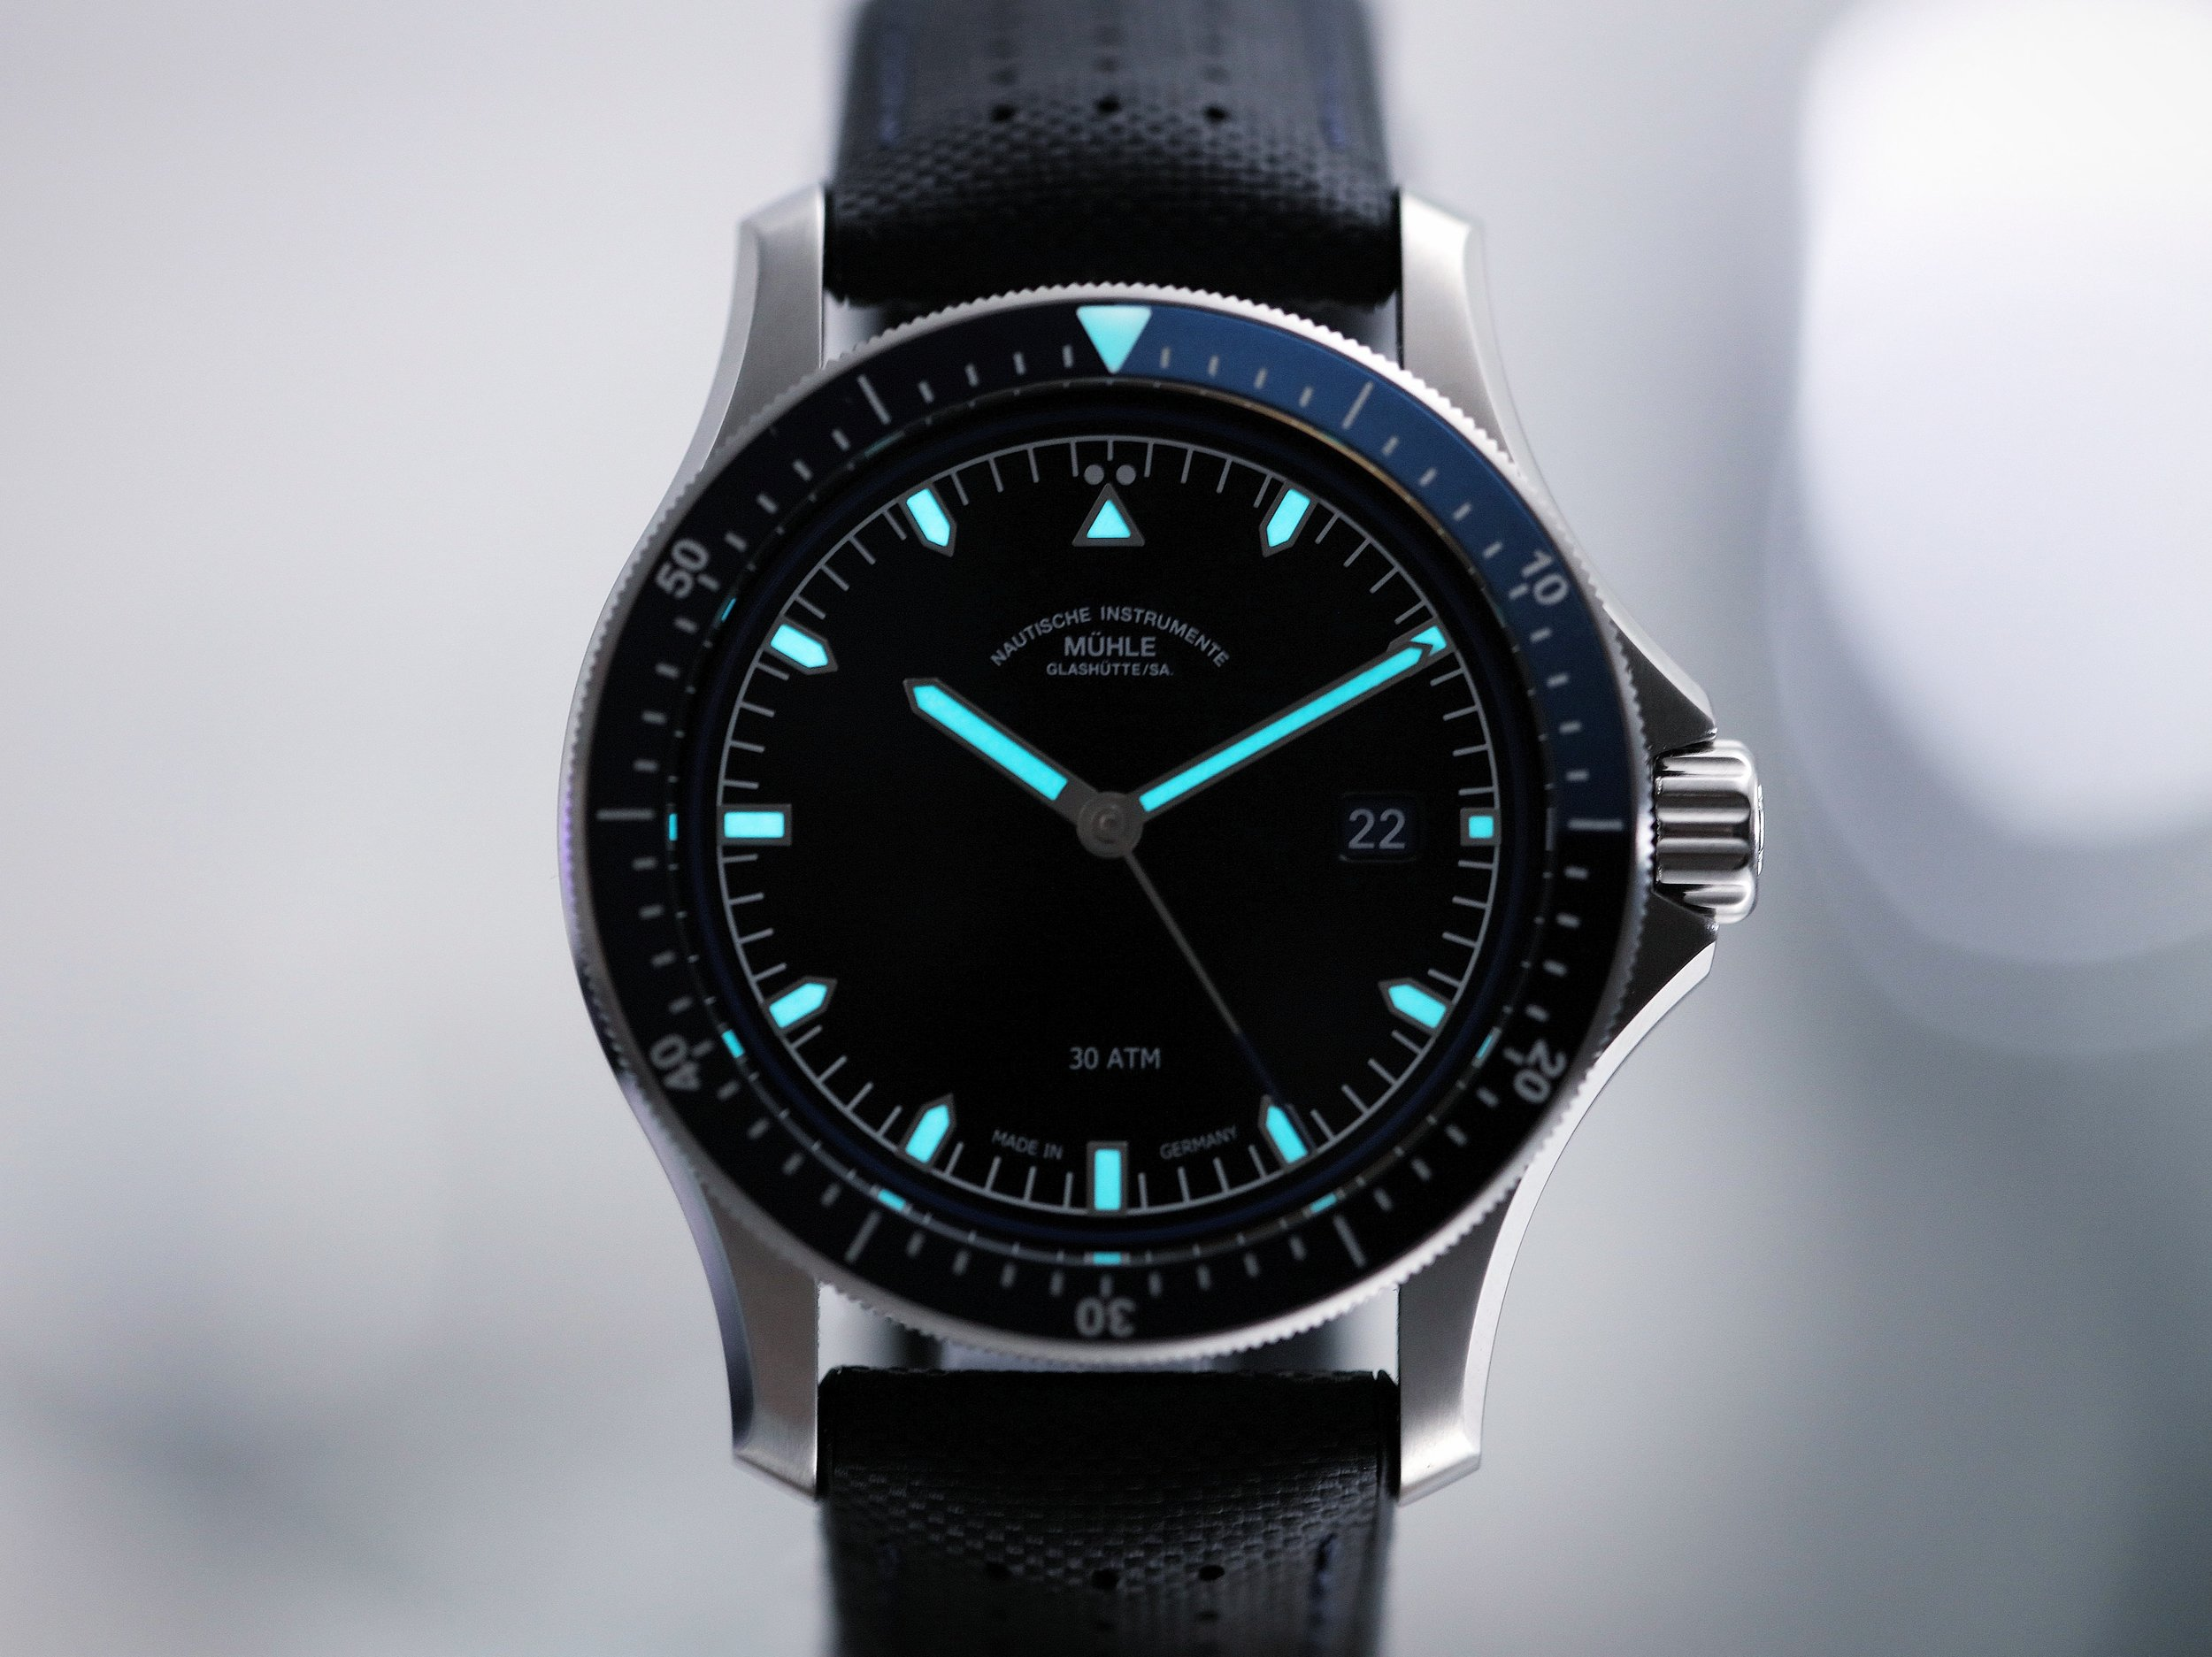 Icy fresh, blue lume. Of course.